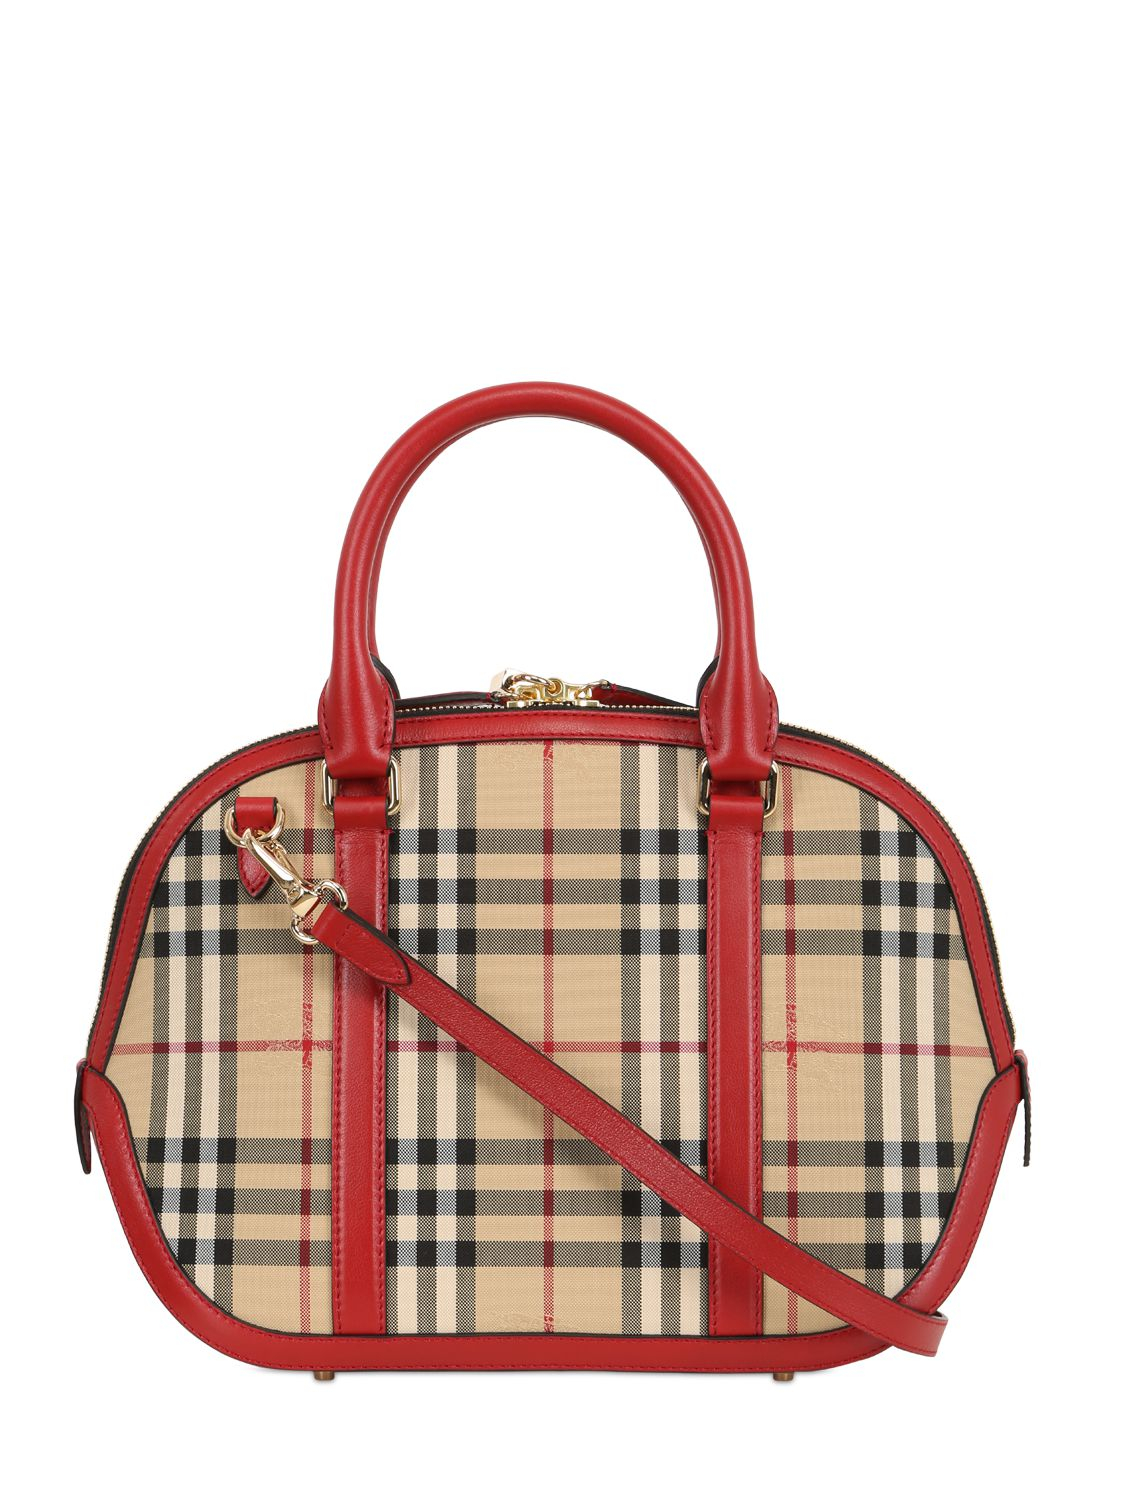 Burberry Small Orchard Bridle House Check Bag in Red - Lyst 0f9bfc0b5e386